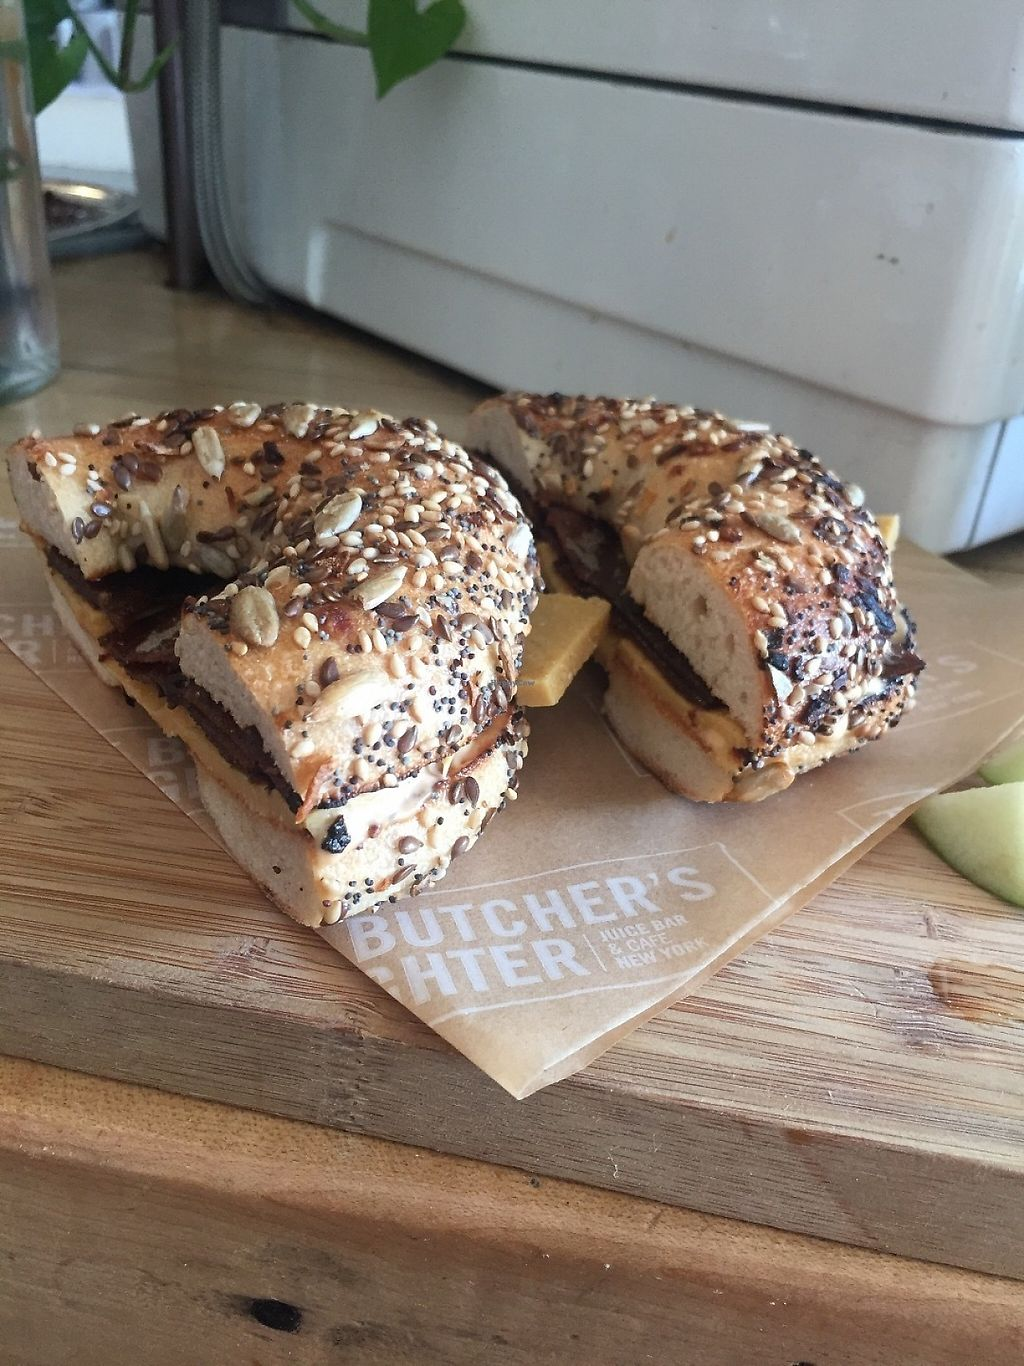 """Photo of The Butcher's Daughter - Nolita  by <a href=""""/members/profile/KaitlynnGill"""">KaitlynnGill</a> <br/>Breakfast bagel <br/> May 2, 2017  - <a href='/contact/abuse/image/35872/254985'>Report</a>"""